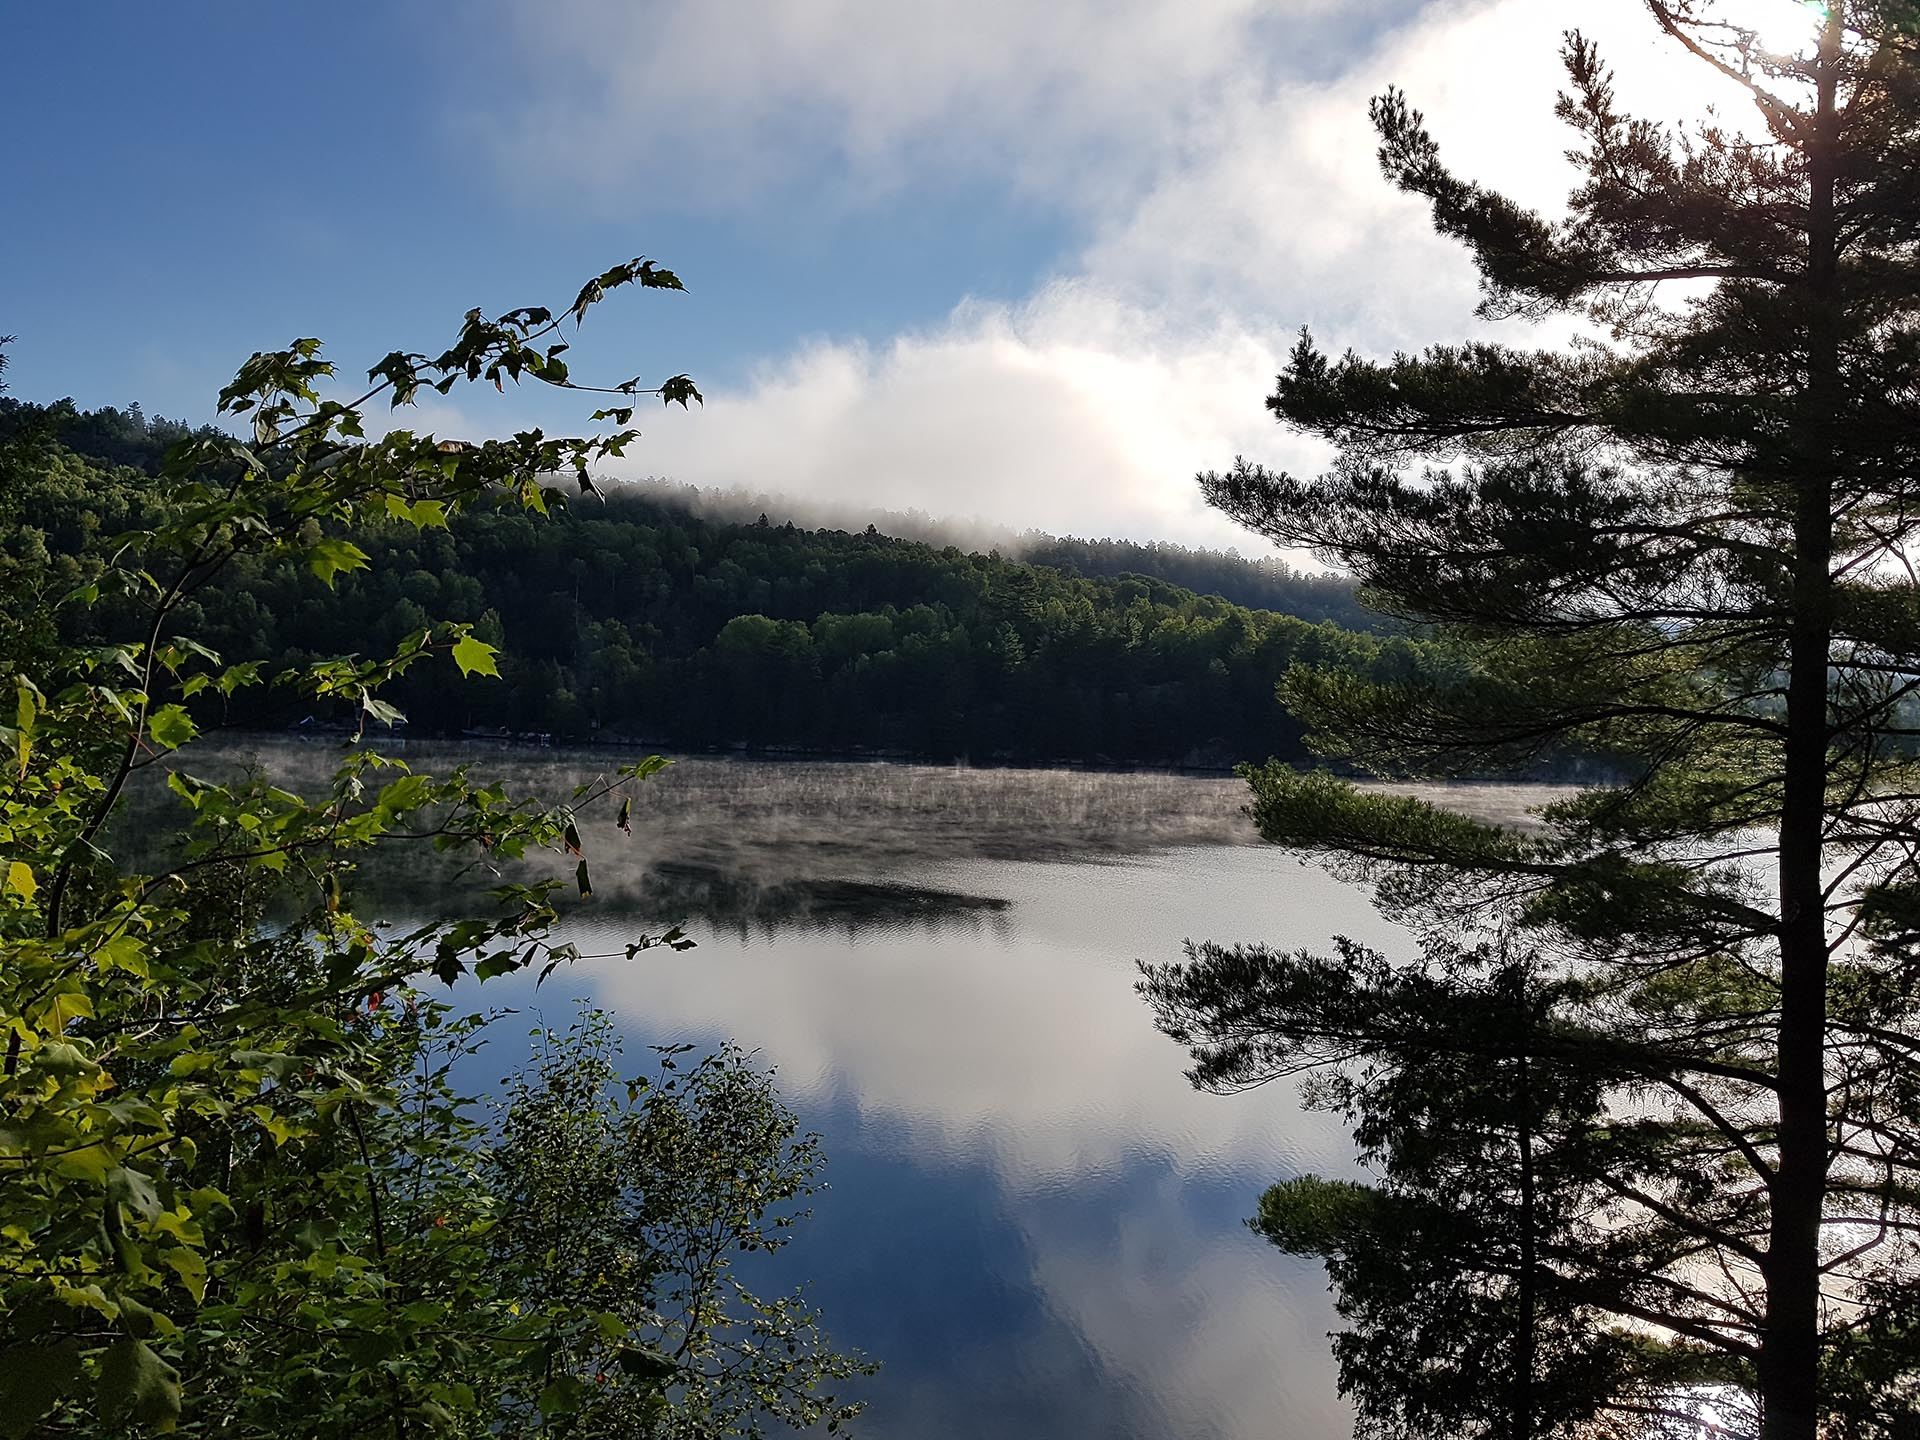 The view of the lake from Kina's cottage with fog